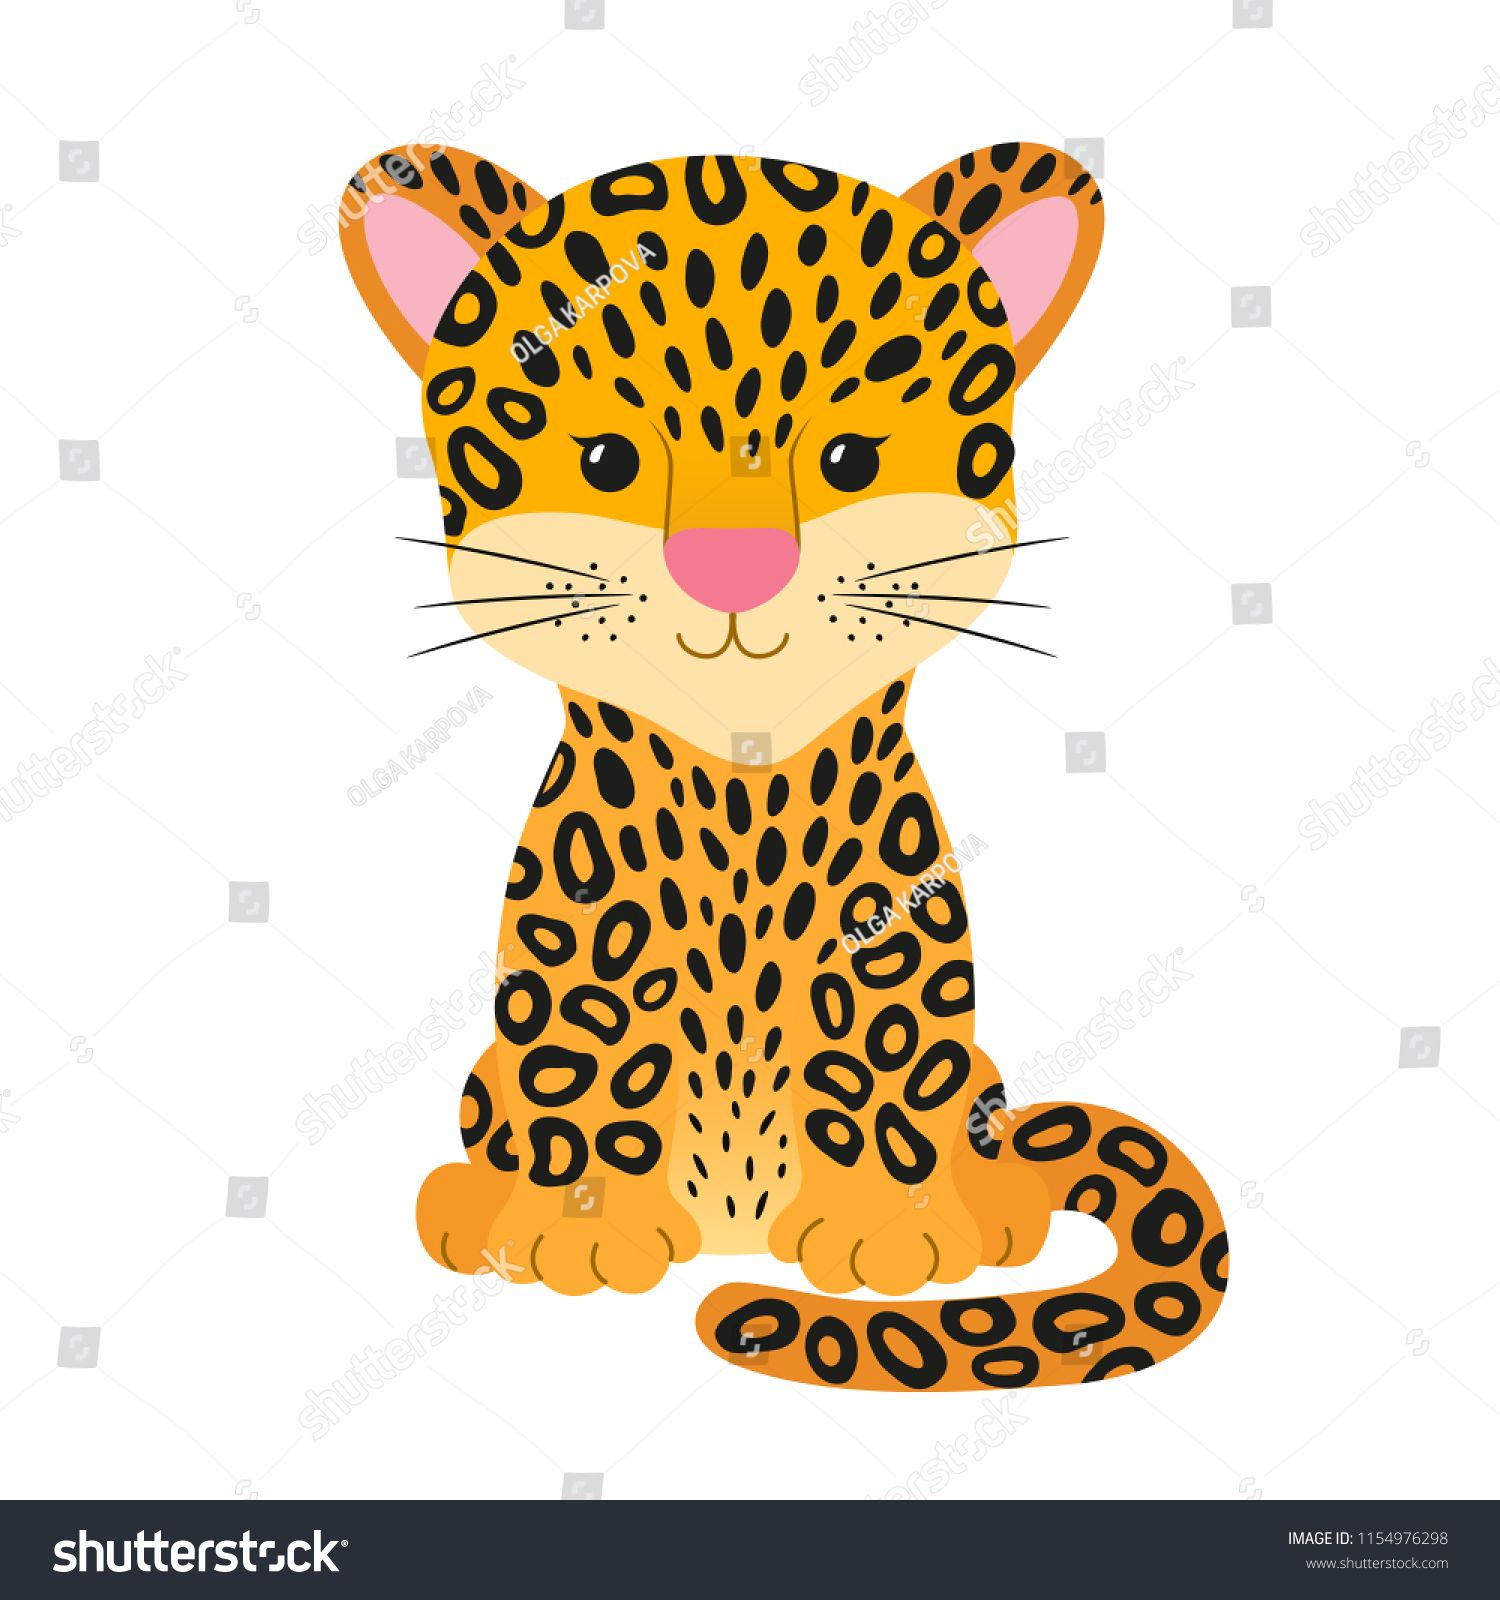 Jaguar clipart tropical animal. Cute cheetah leopard or